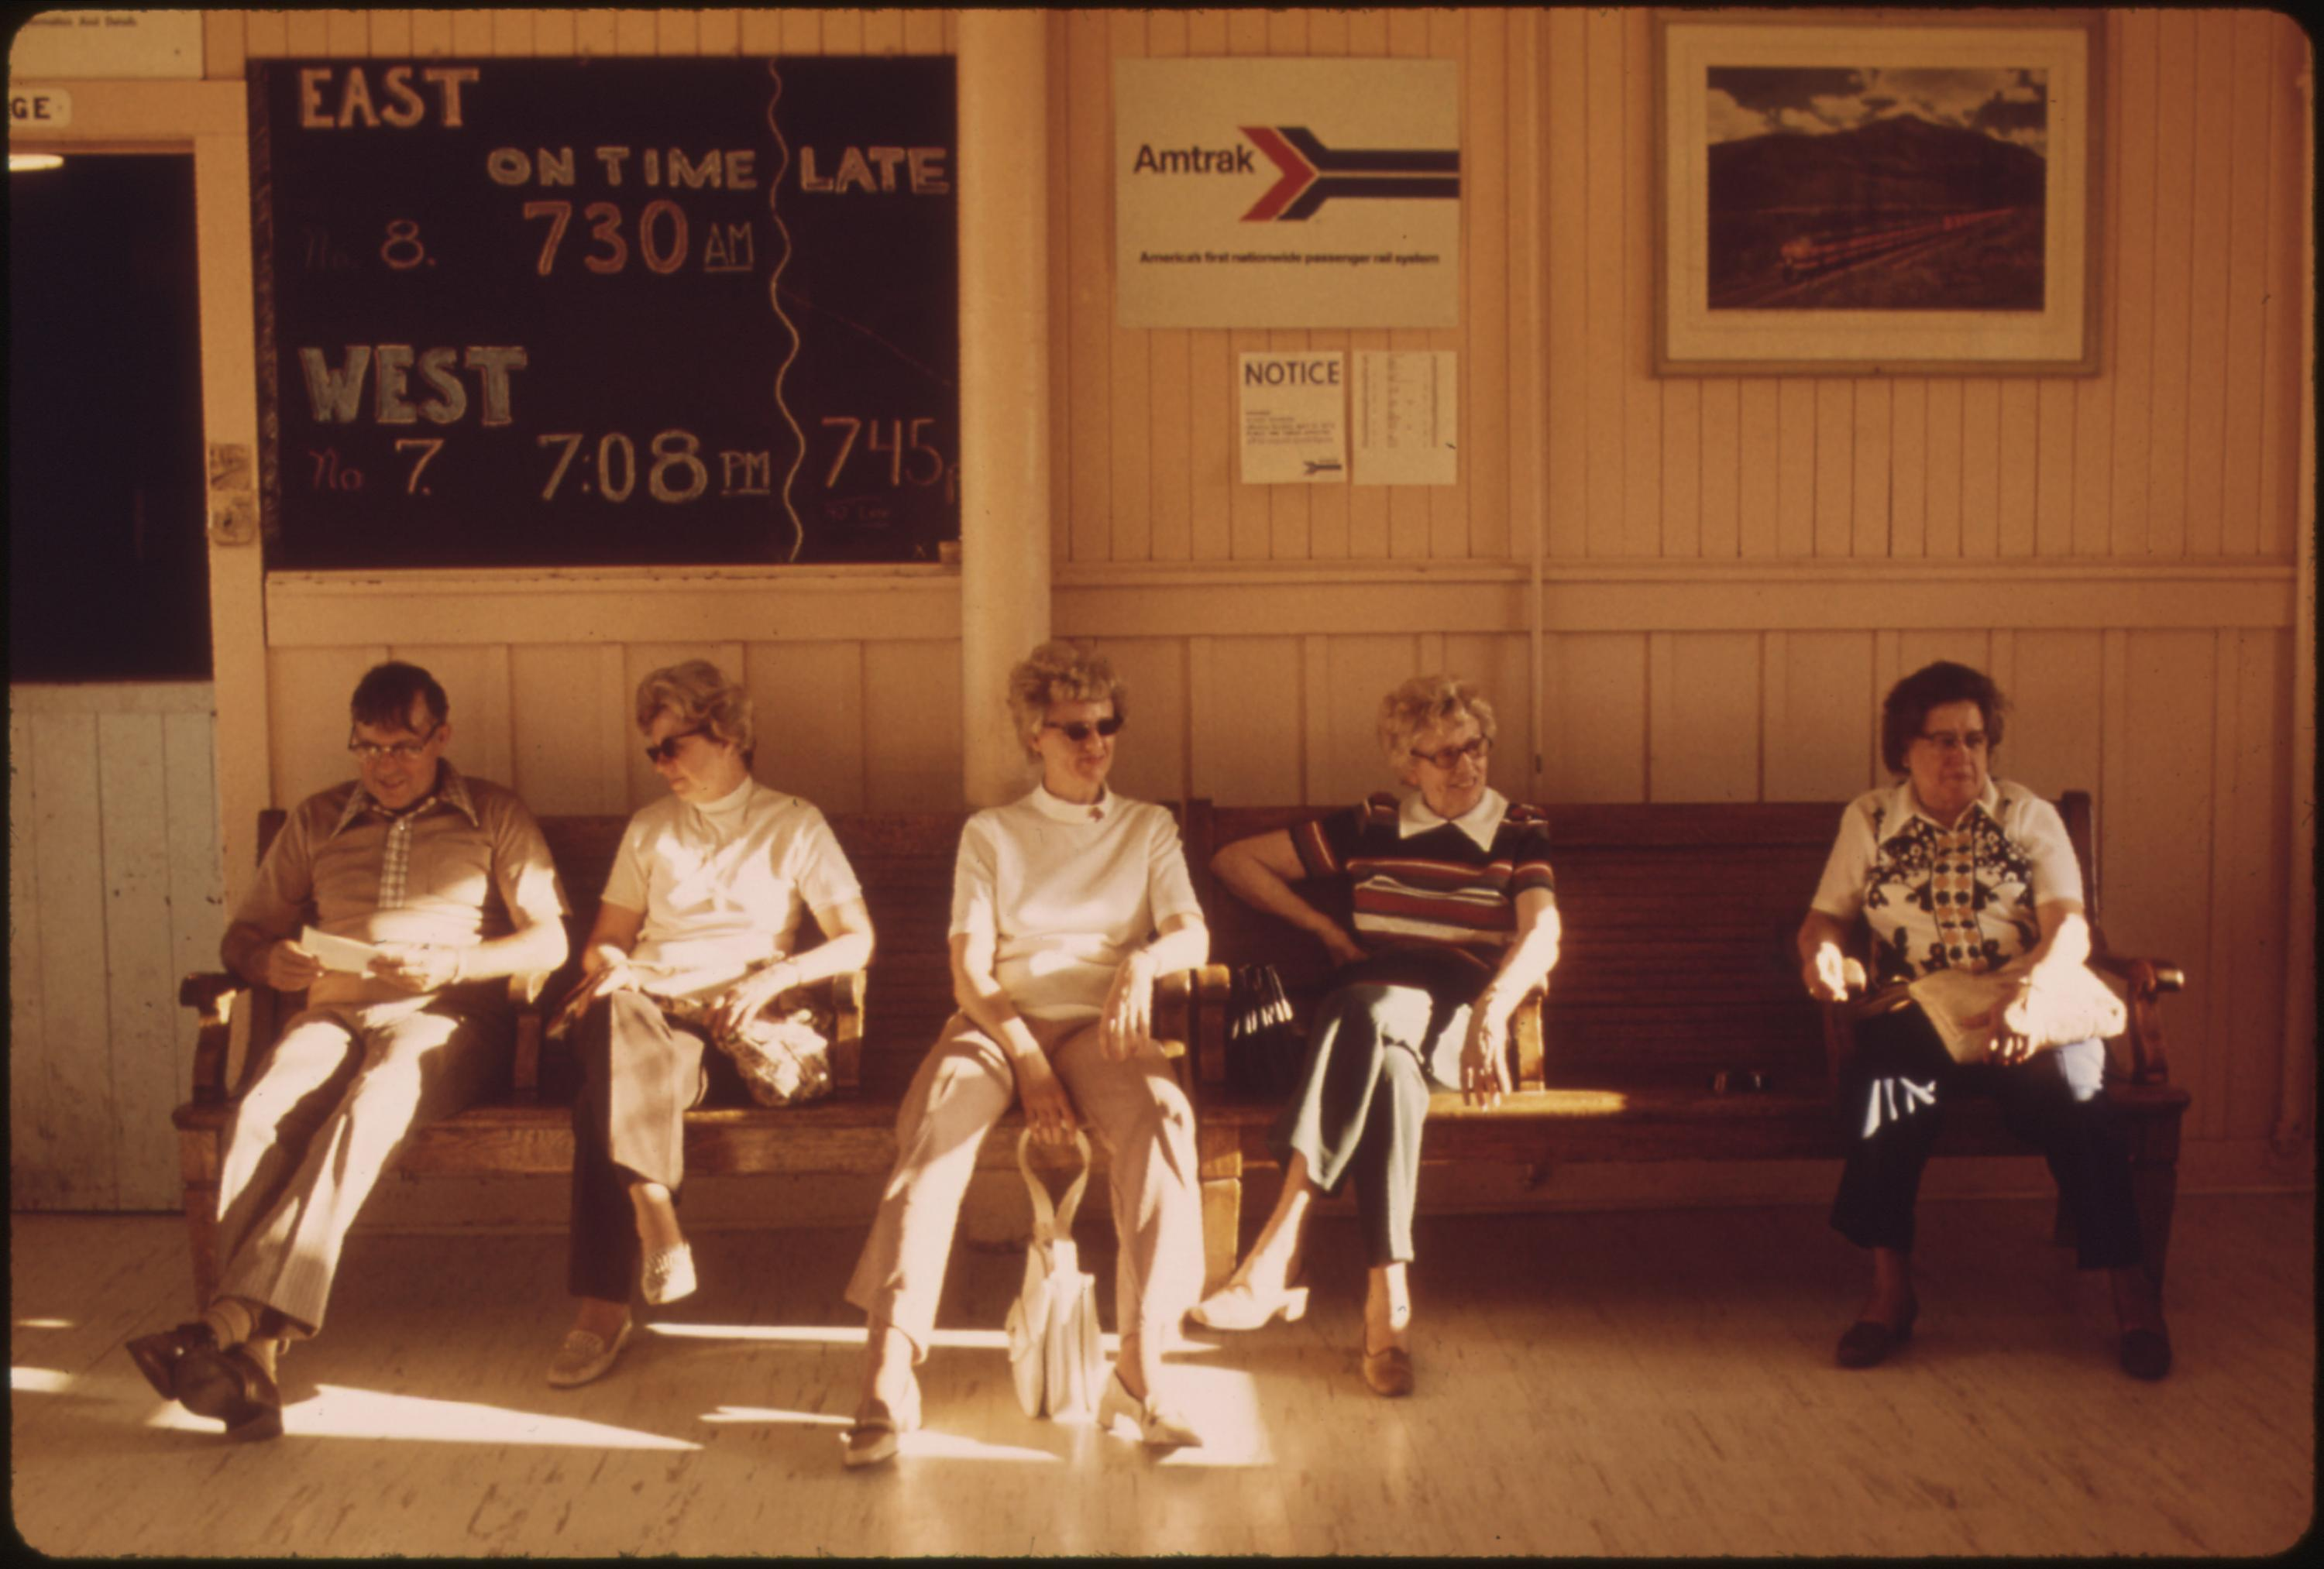 Passengers waiting in the station at East Glacier Park Montana, for the train which will take them to Seattle, Washington, June 1974